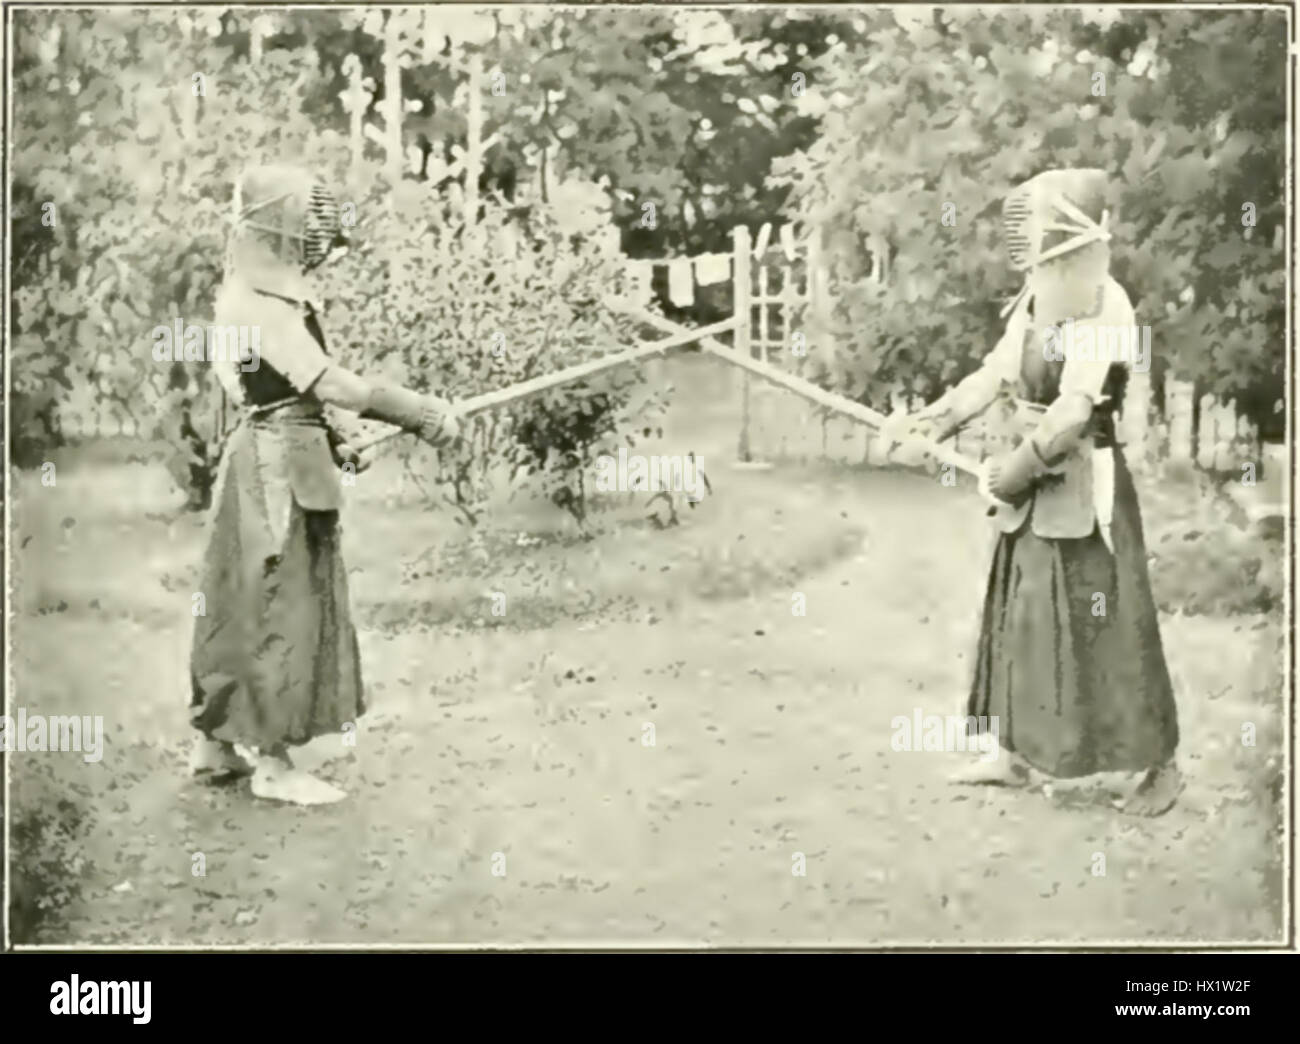 Kendo Historical Stock Photos & Kendo Historical Stock Images - Alamy